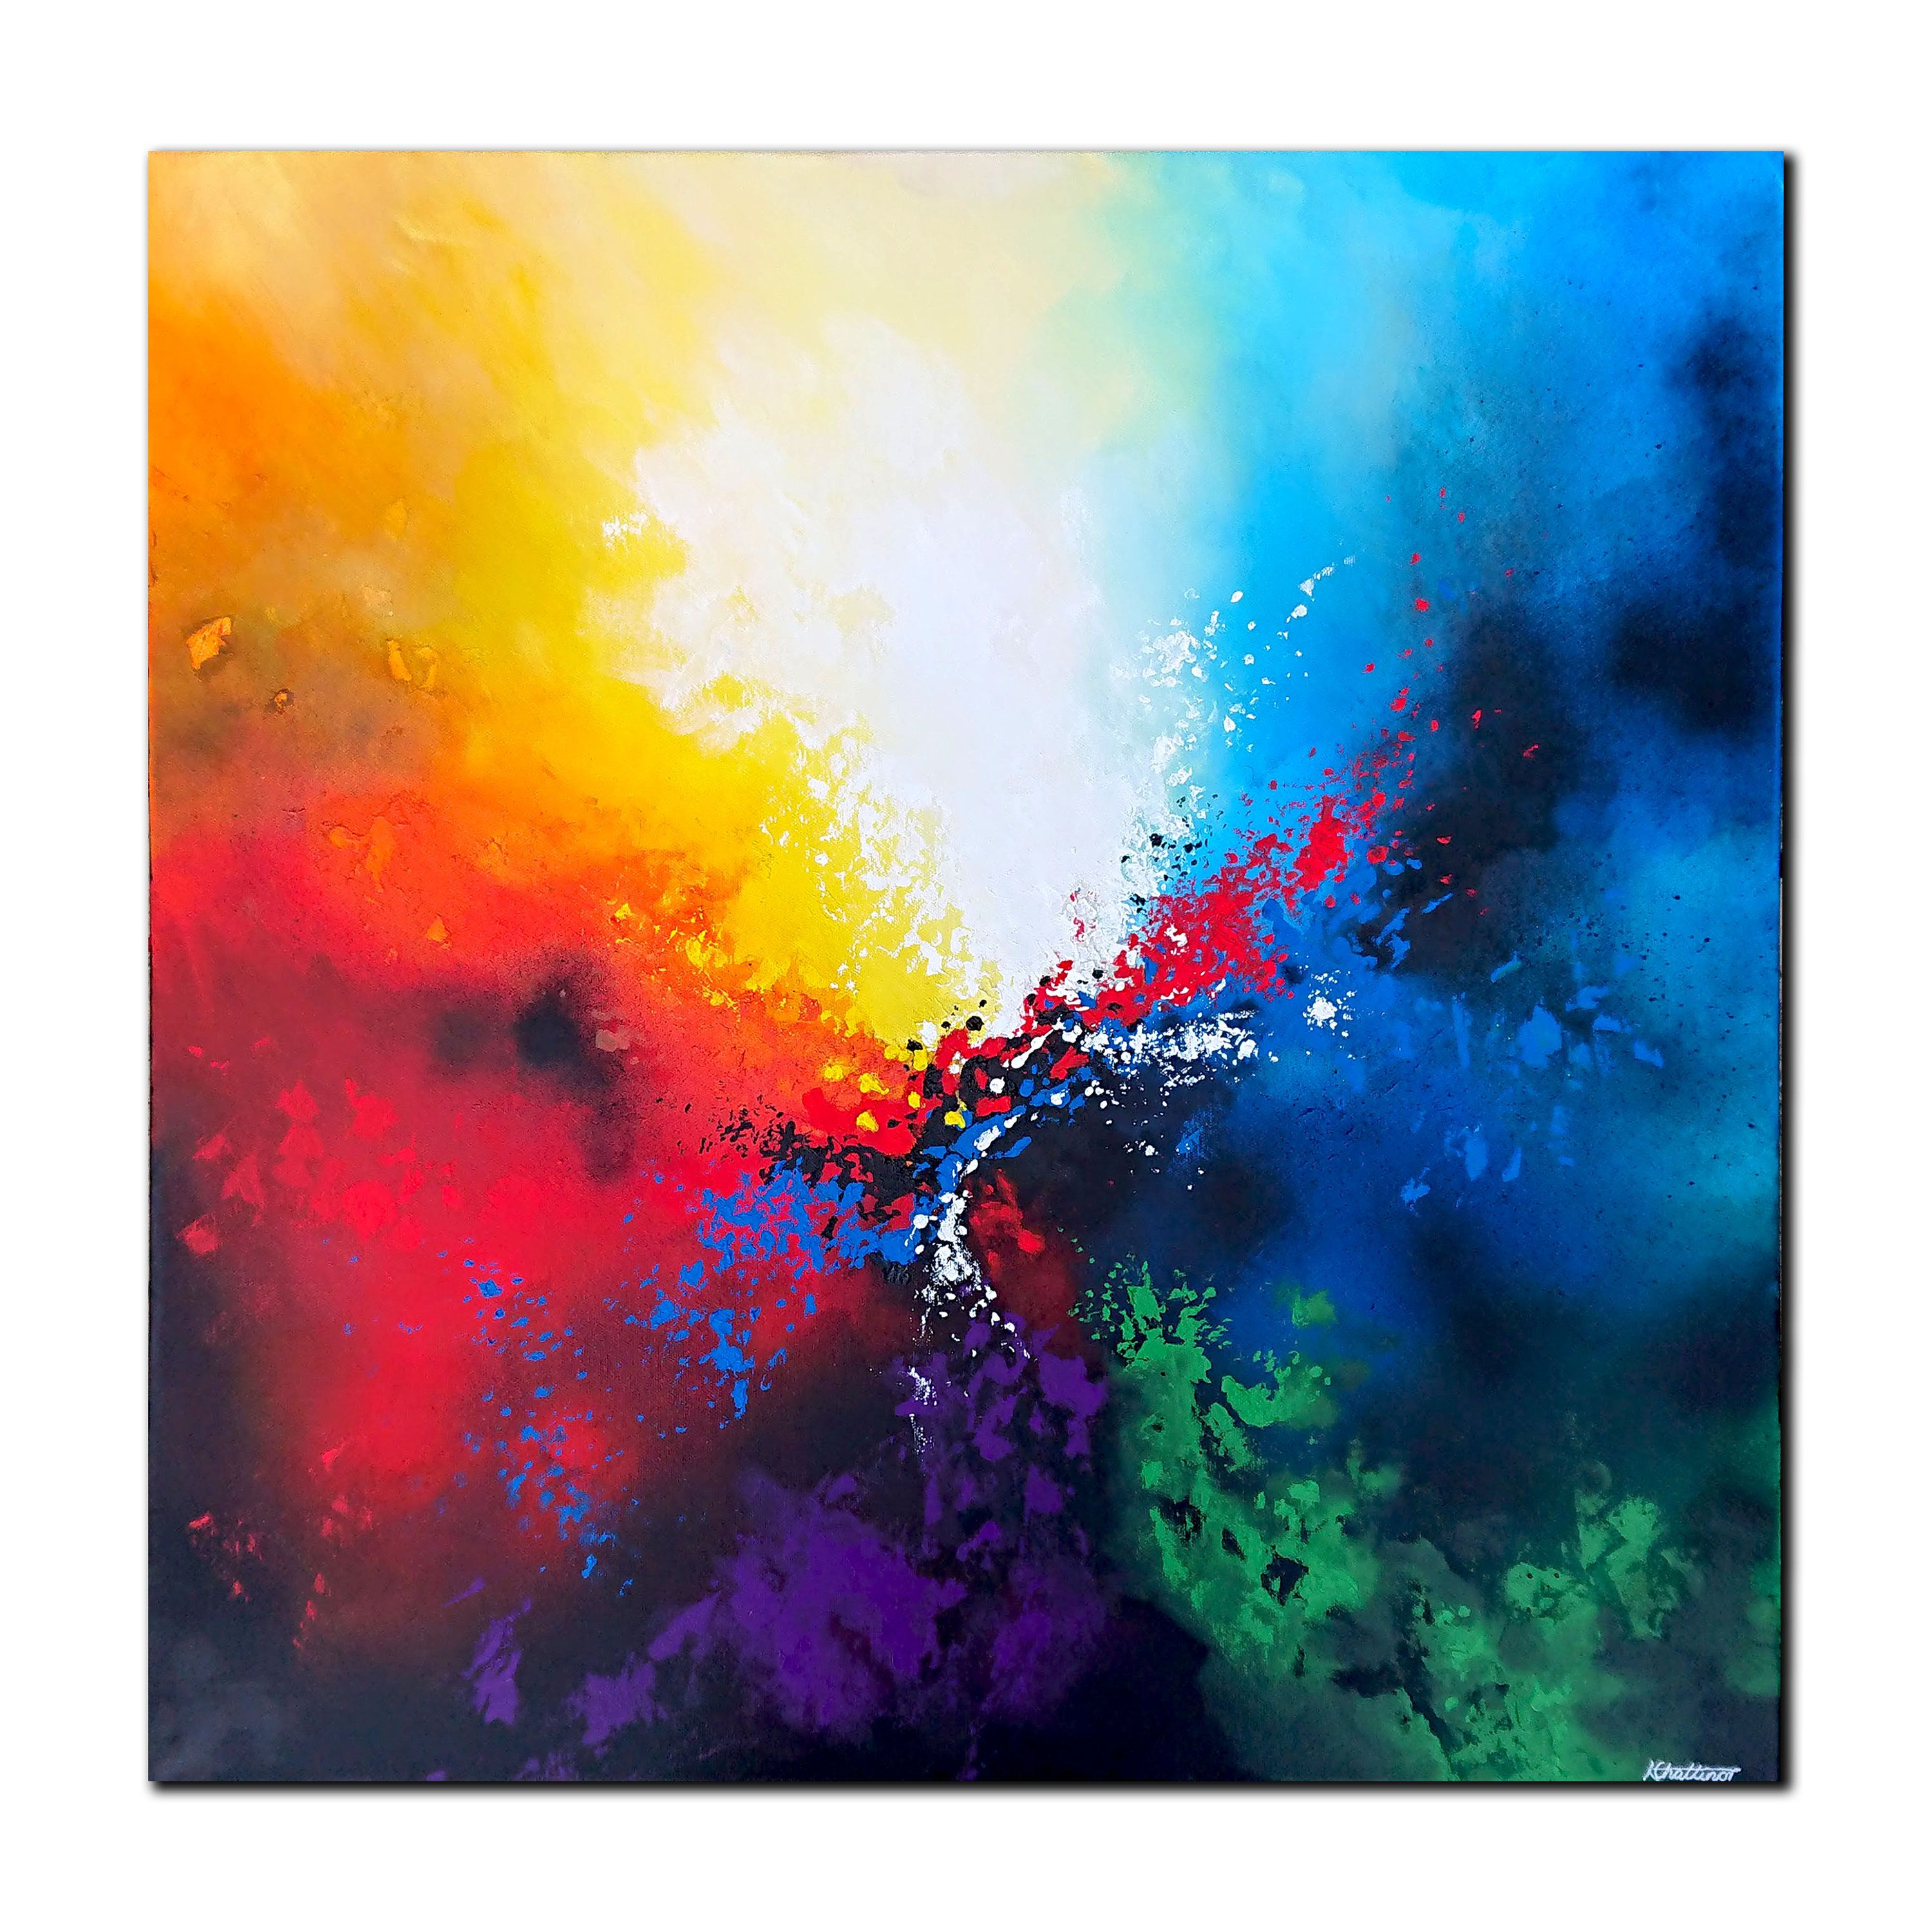 Blue Sky Painting Original Painting Landscape Abstract Vertical Painting Canvas Oversized Wall Art Abstract Purple Rainbow Painting